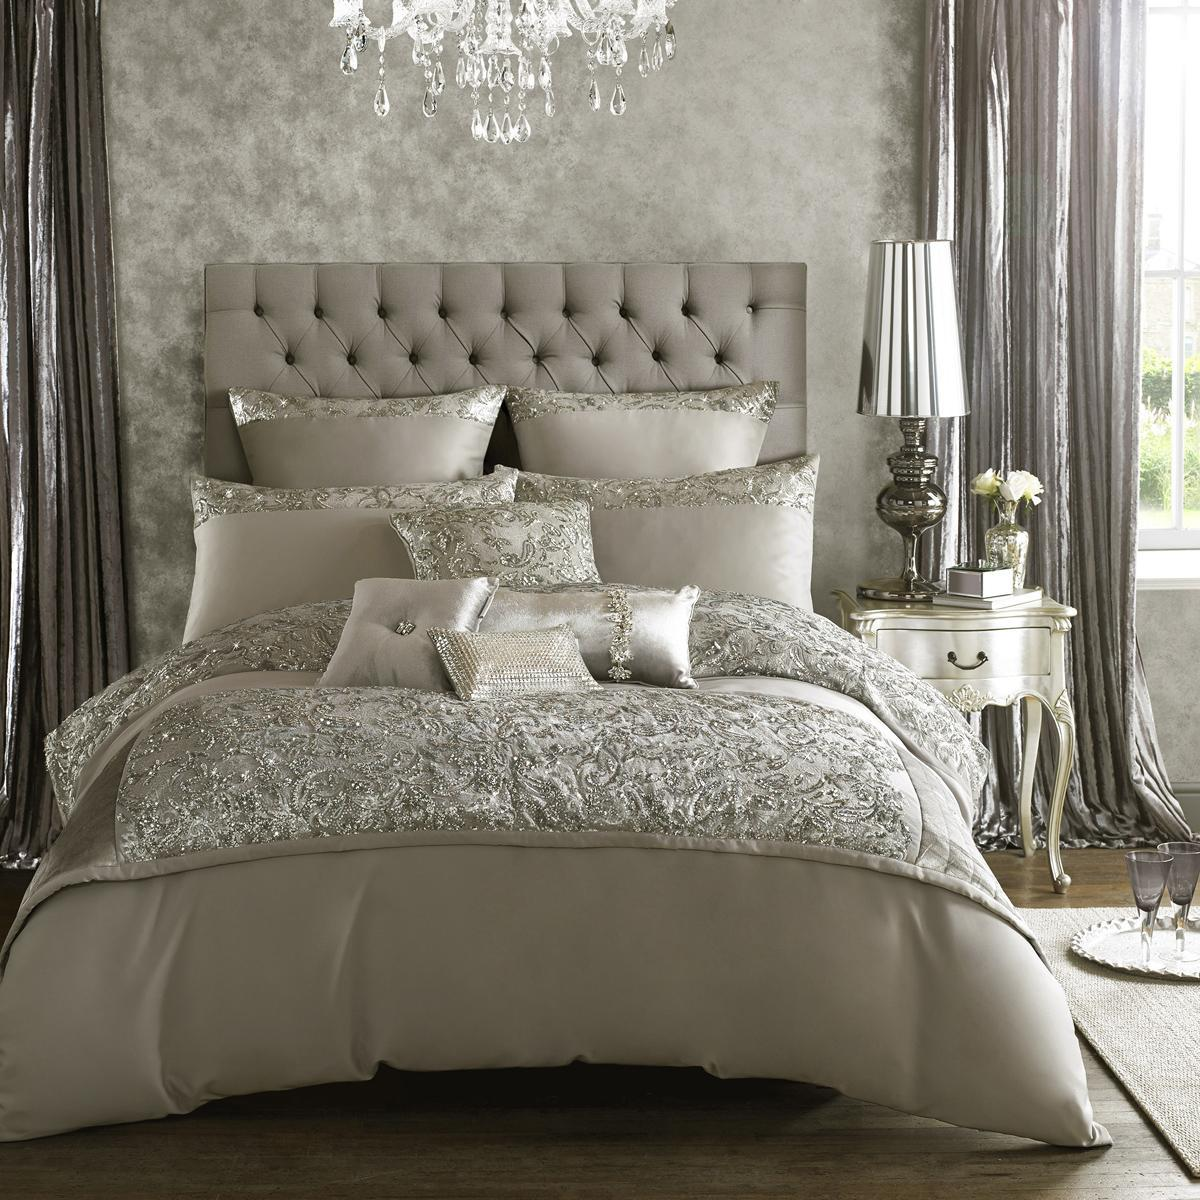 Ashley Wilde Bedding Kylie Minogue Alexa Bedding In Silver Picture